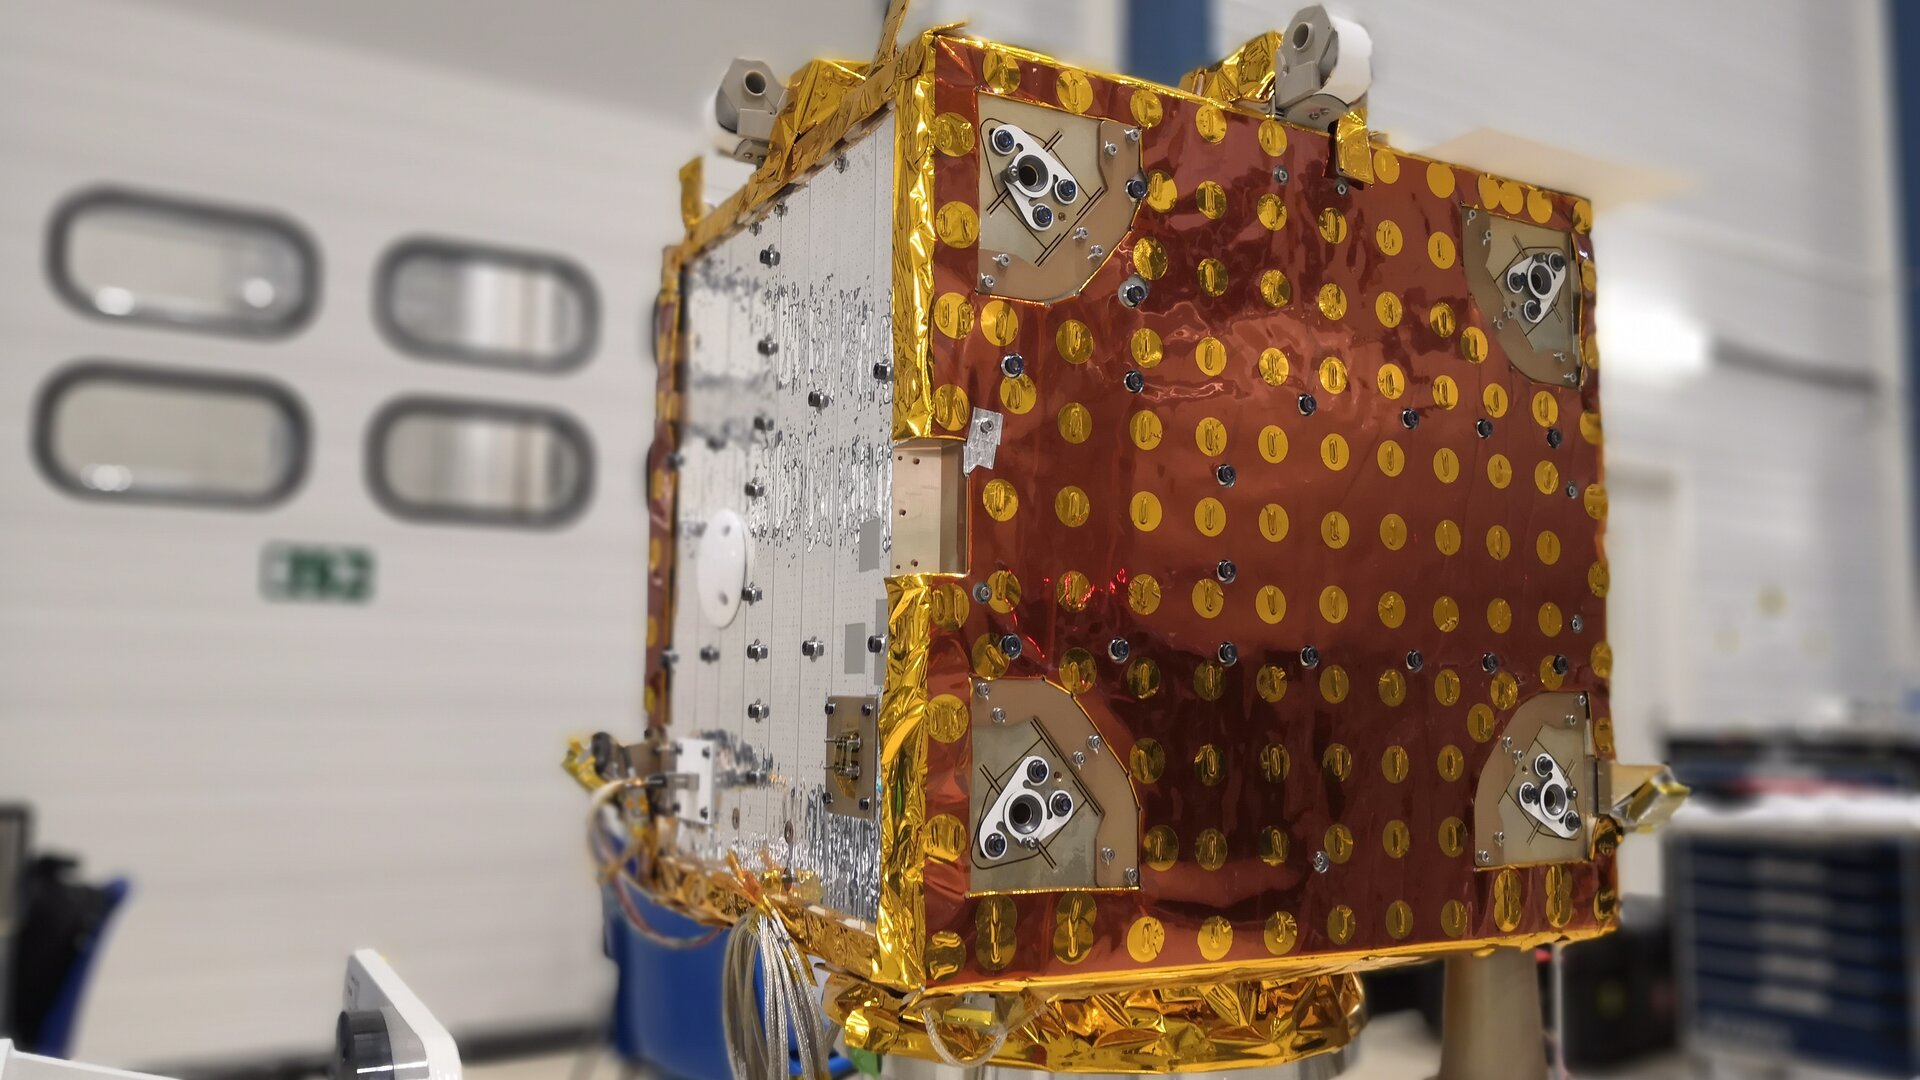 The microsatellite has completed its environmental tests at Centre Spatial de Liège